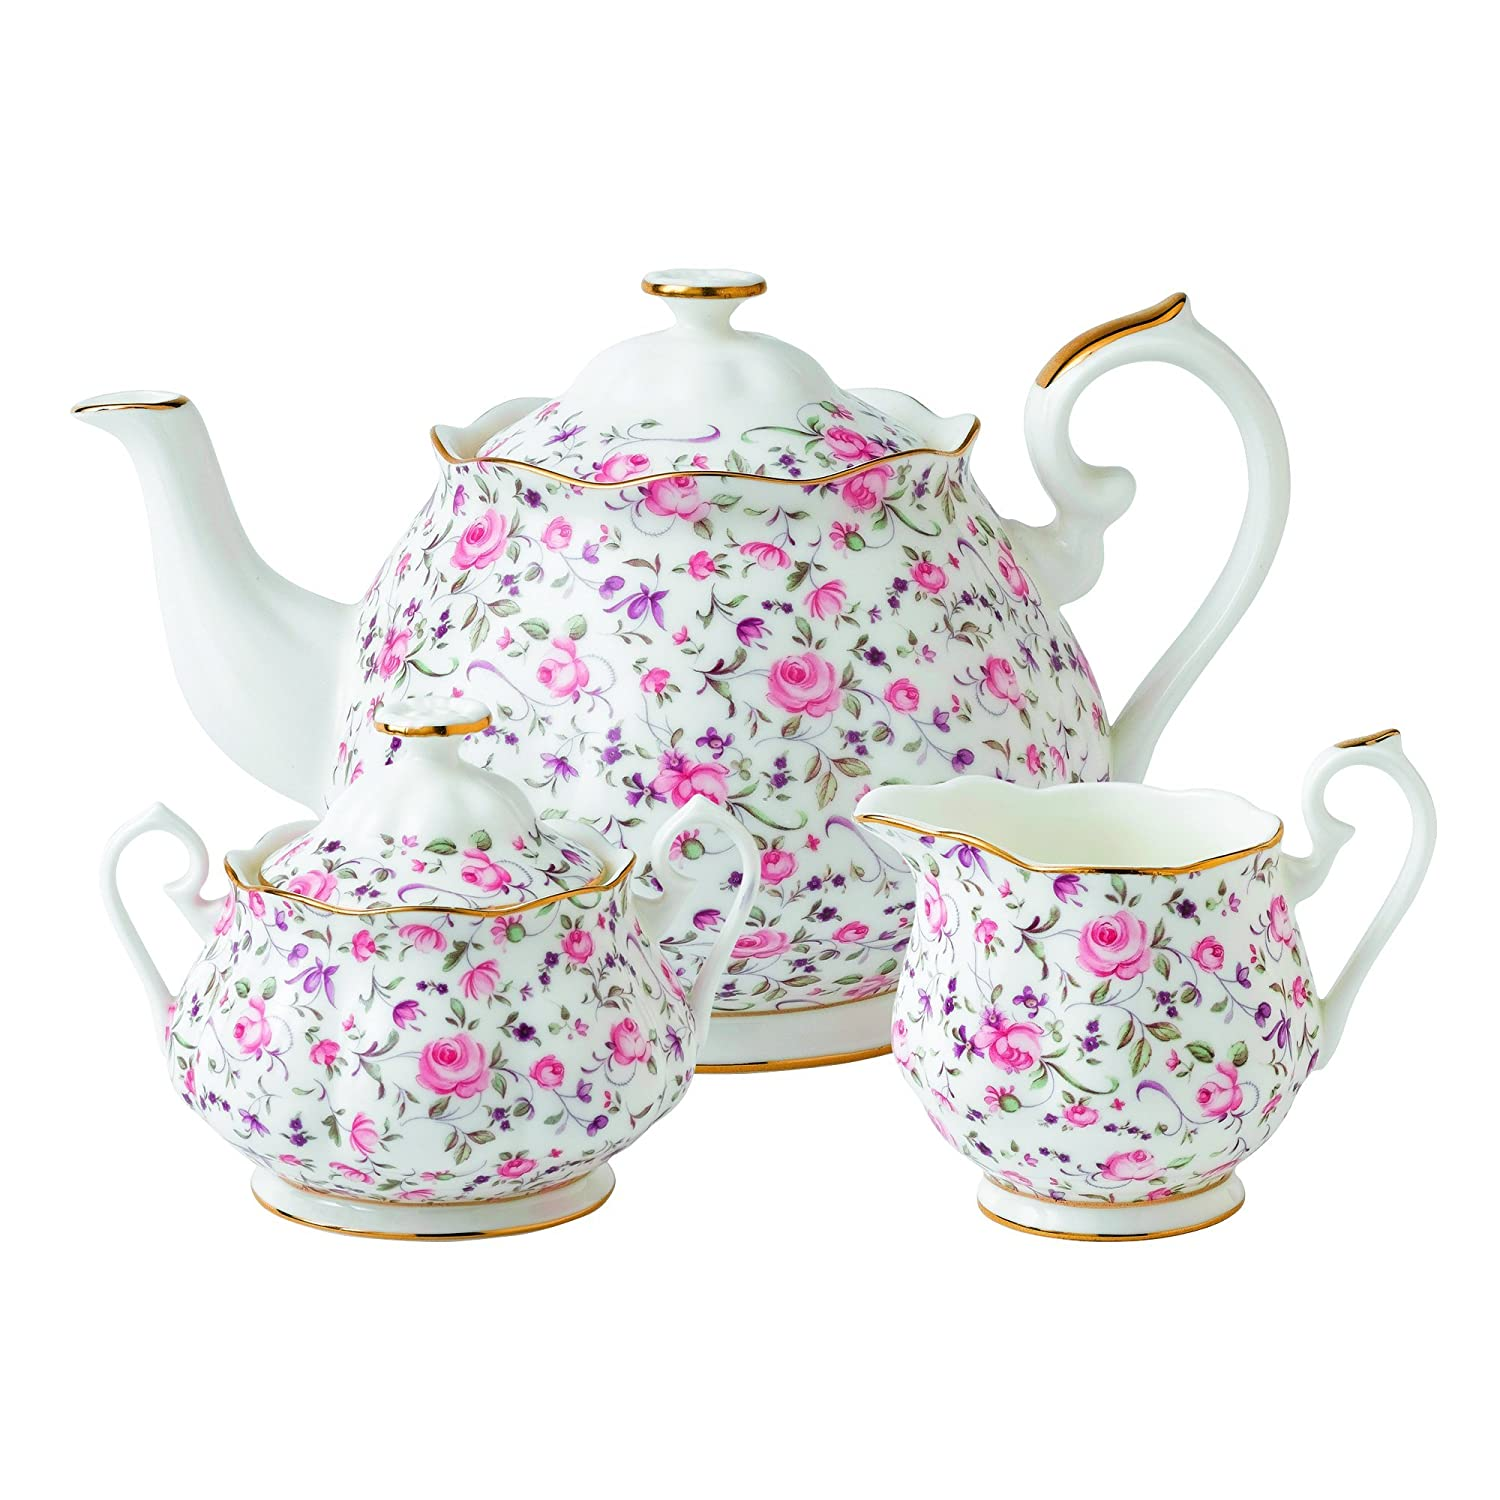 Royal Albert New Country Roses Rose Confetti Teaset, 3-Piece